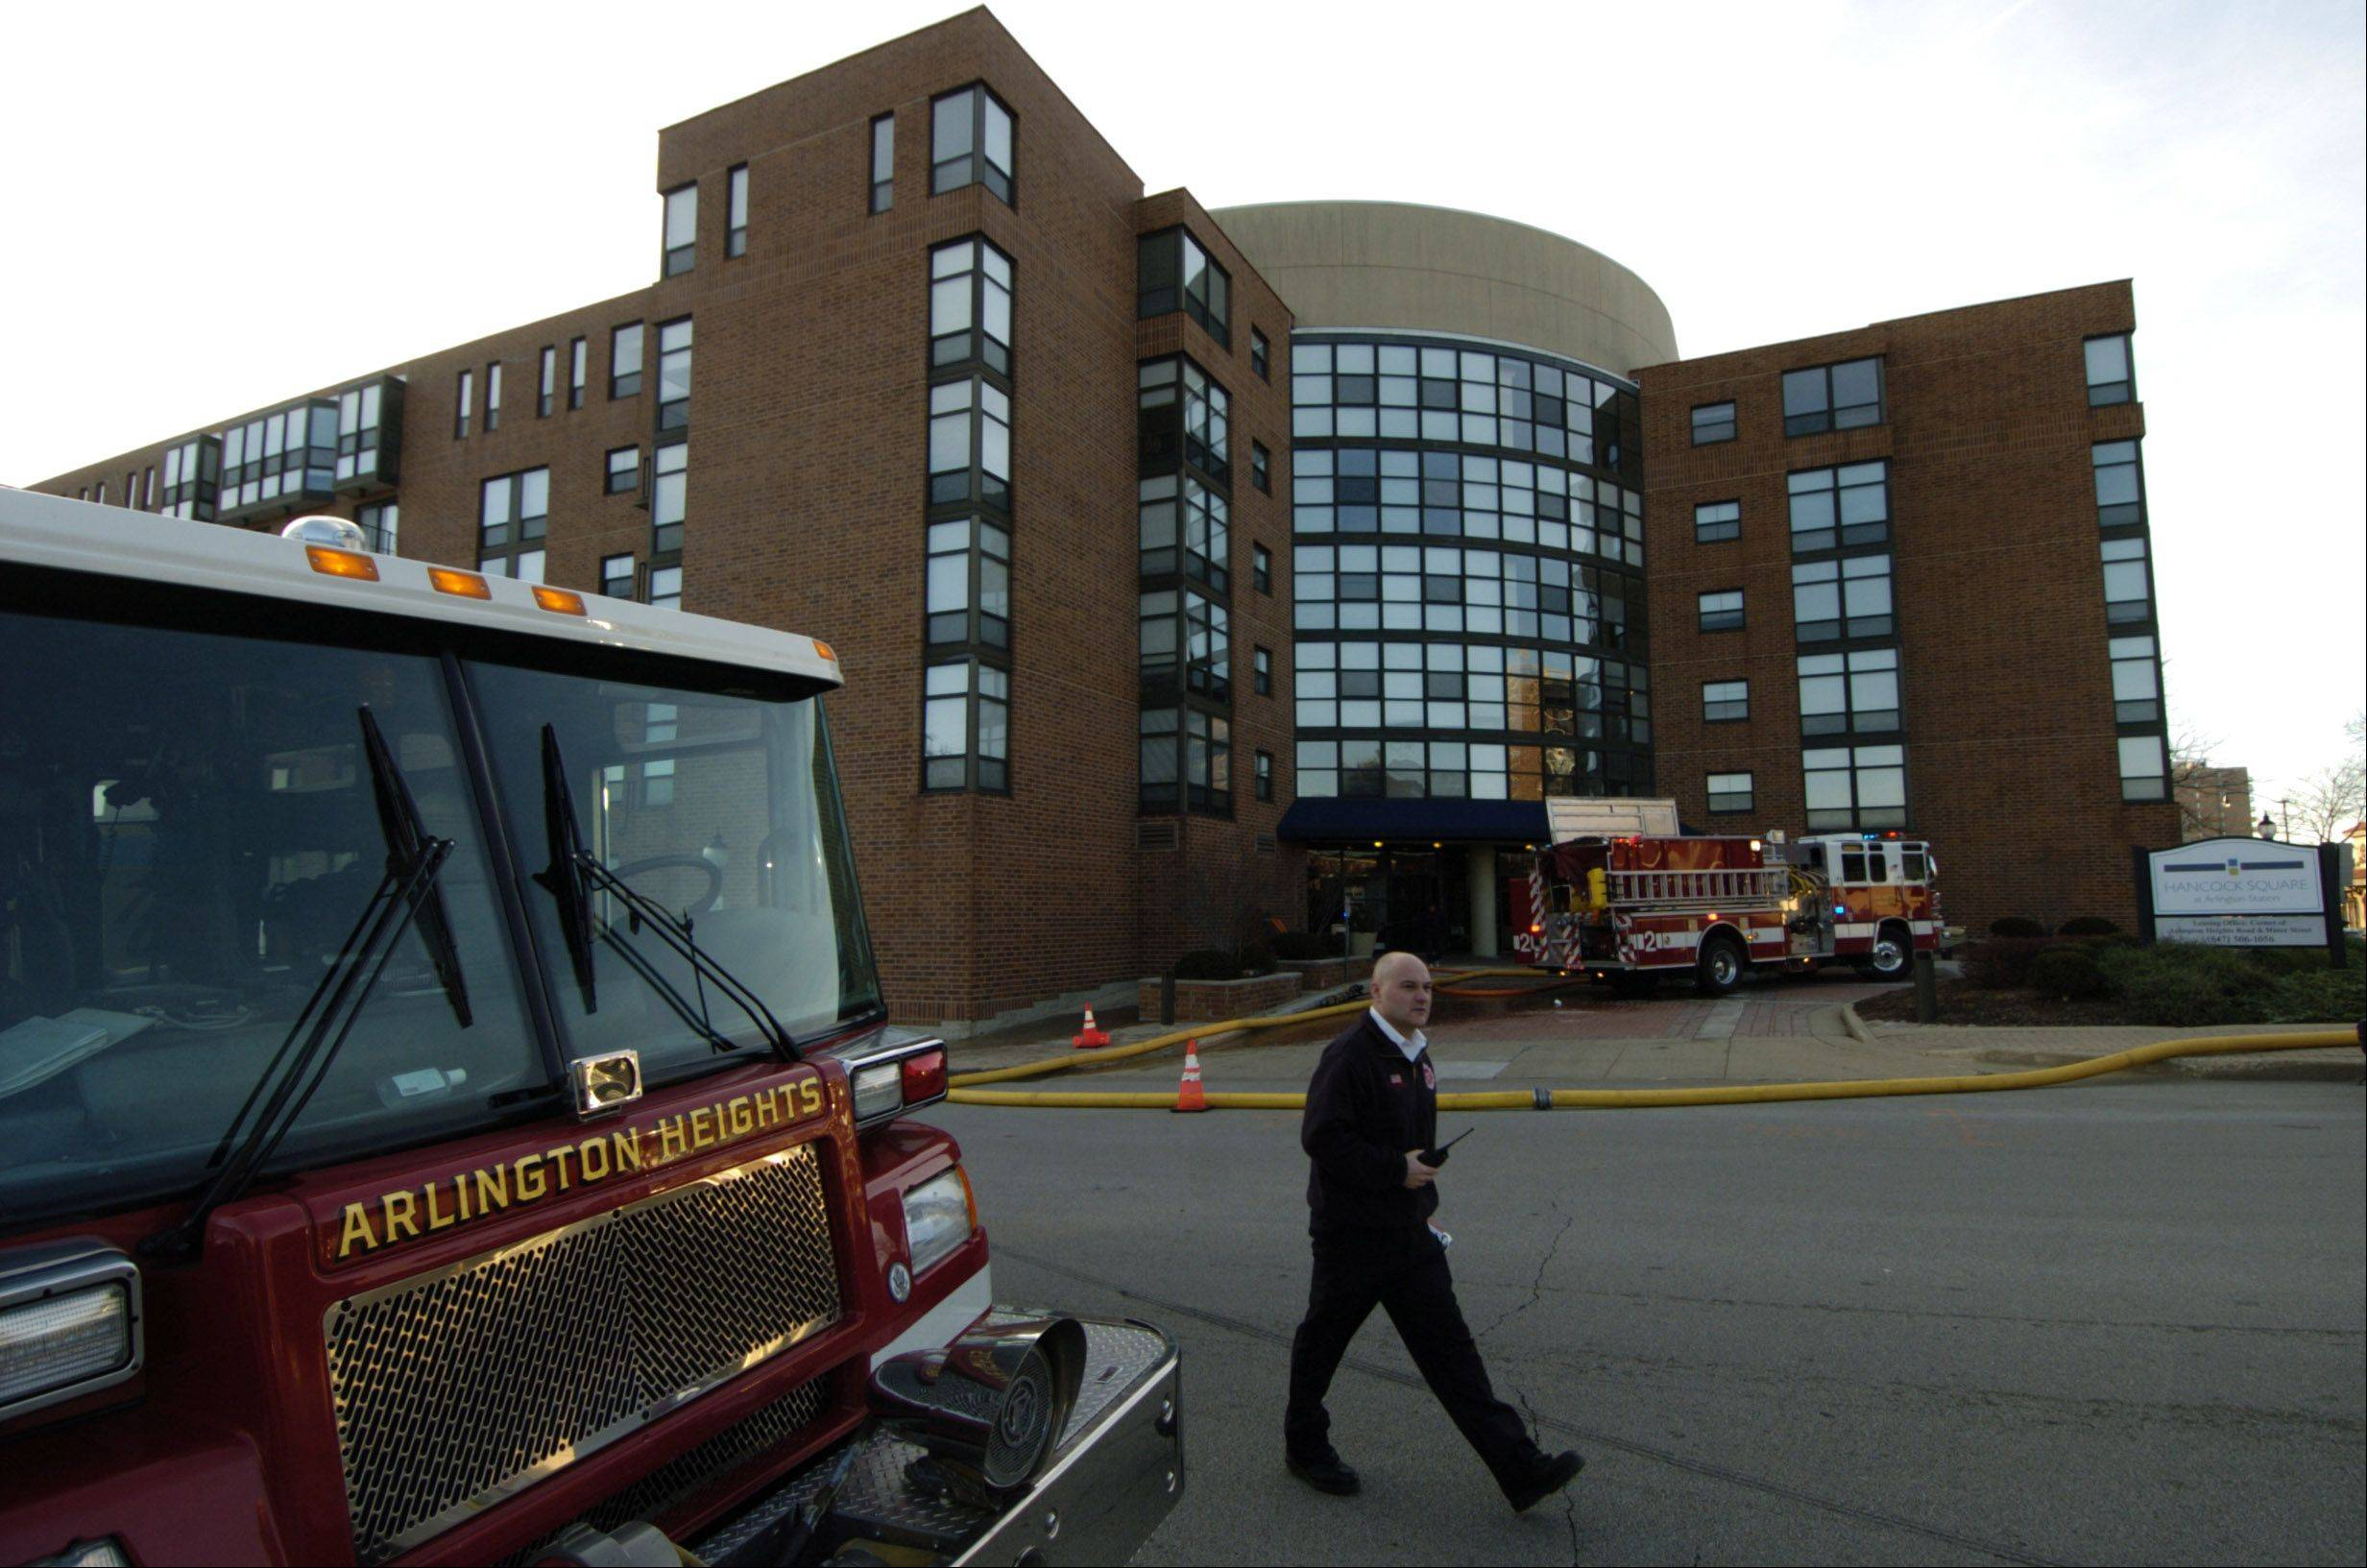 The Arlington Heights Fire Department responded to an early morning fire Thursday at the Hancock Square building on the 200 block of North Dunton Avenue. A 36-year-old female resident died in the fire, authorities said.